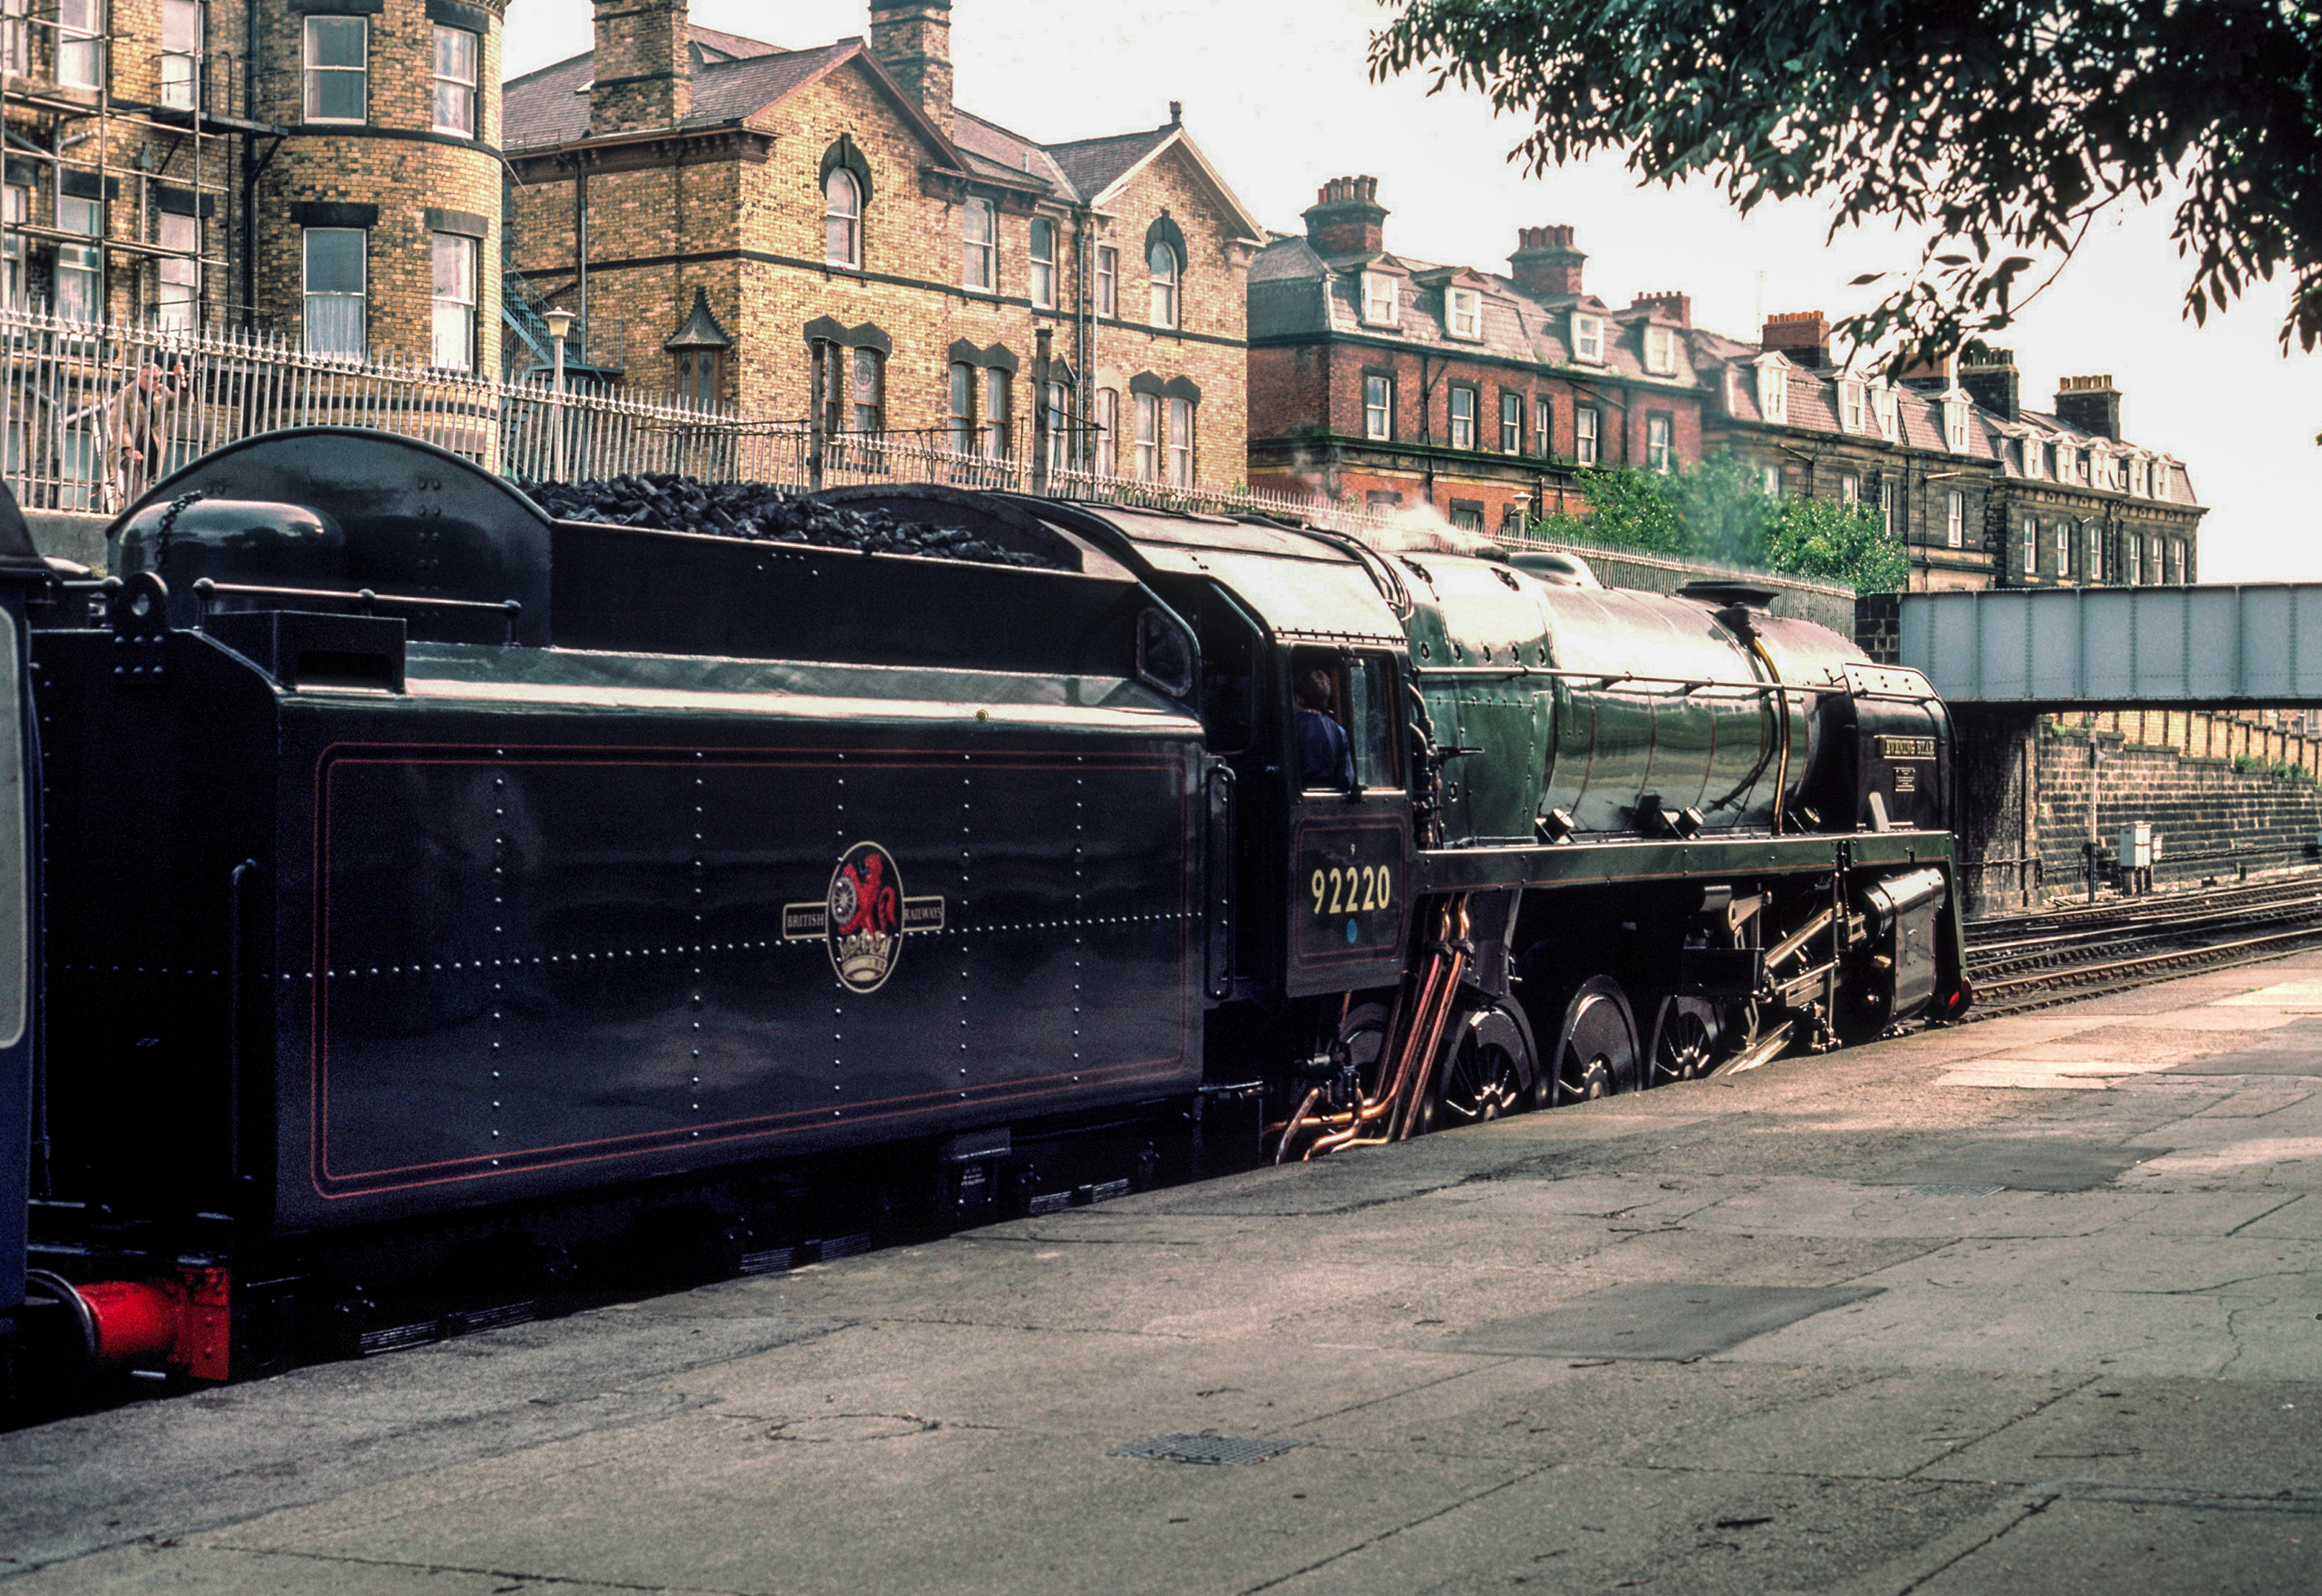 92220 Evening Star at simmers at Scarborough waiting to return to York 22/8/85